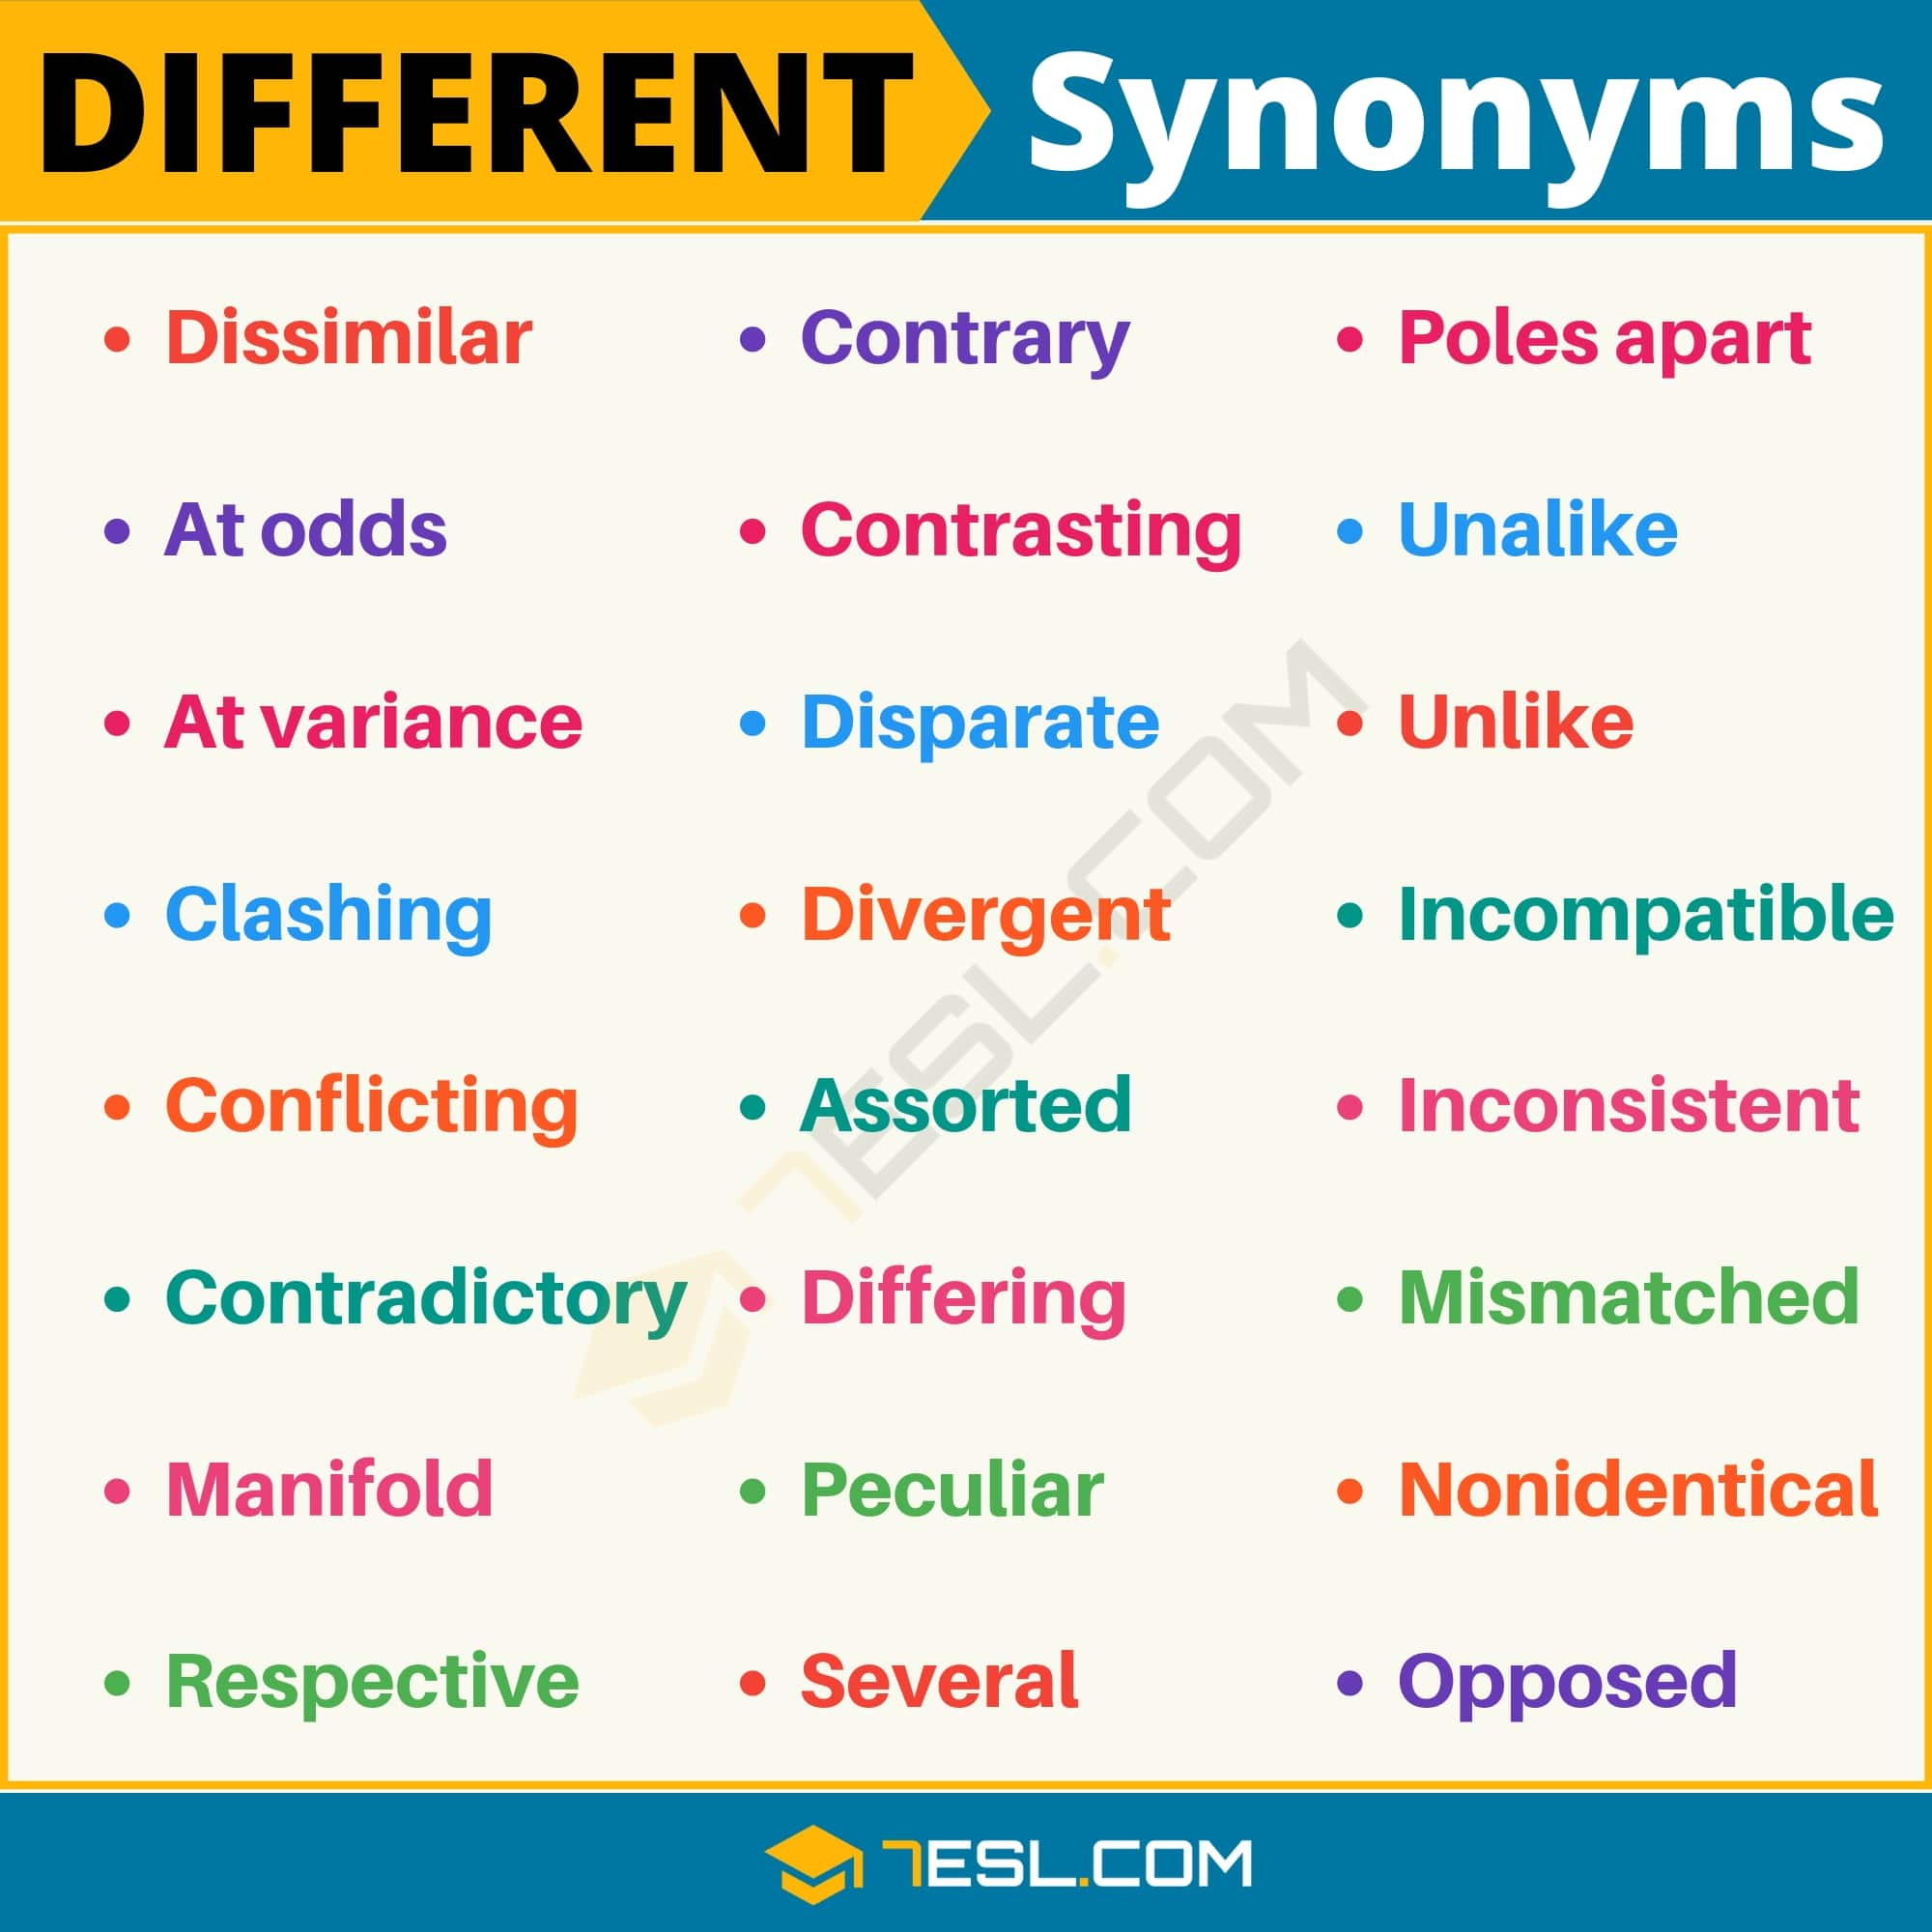 DIFFERENT Synonym: List of 25 Useful Synonyms for Different - 7 E S L